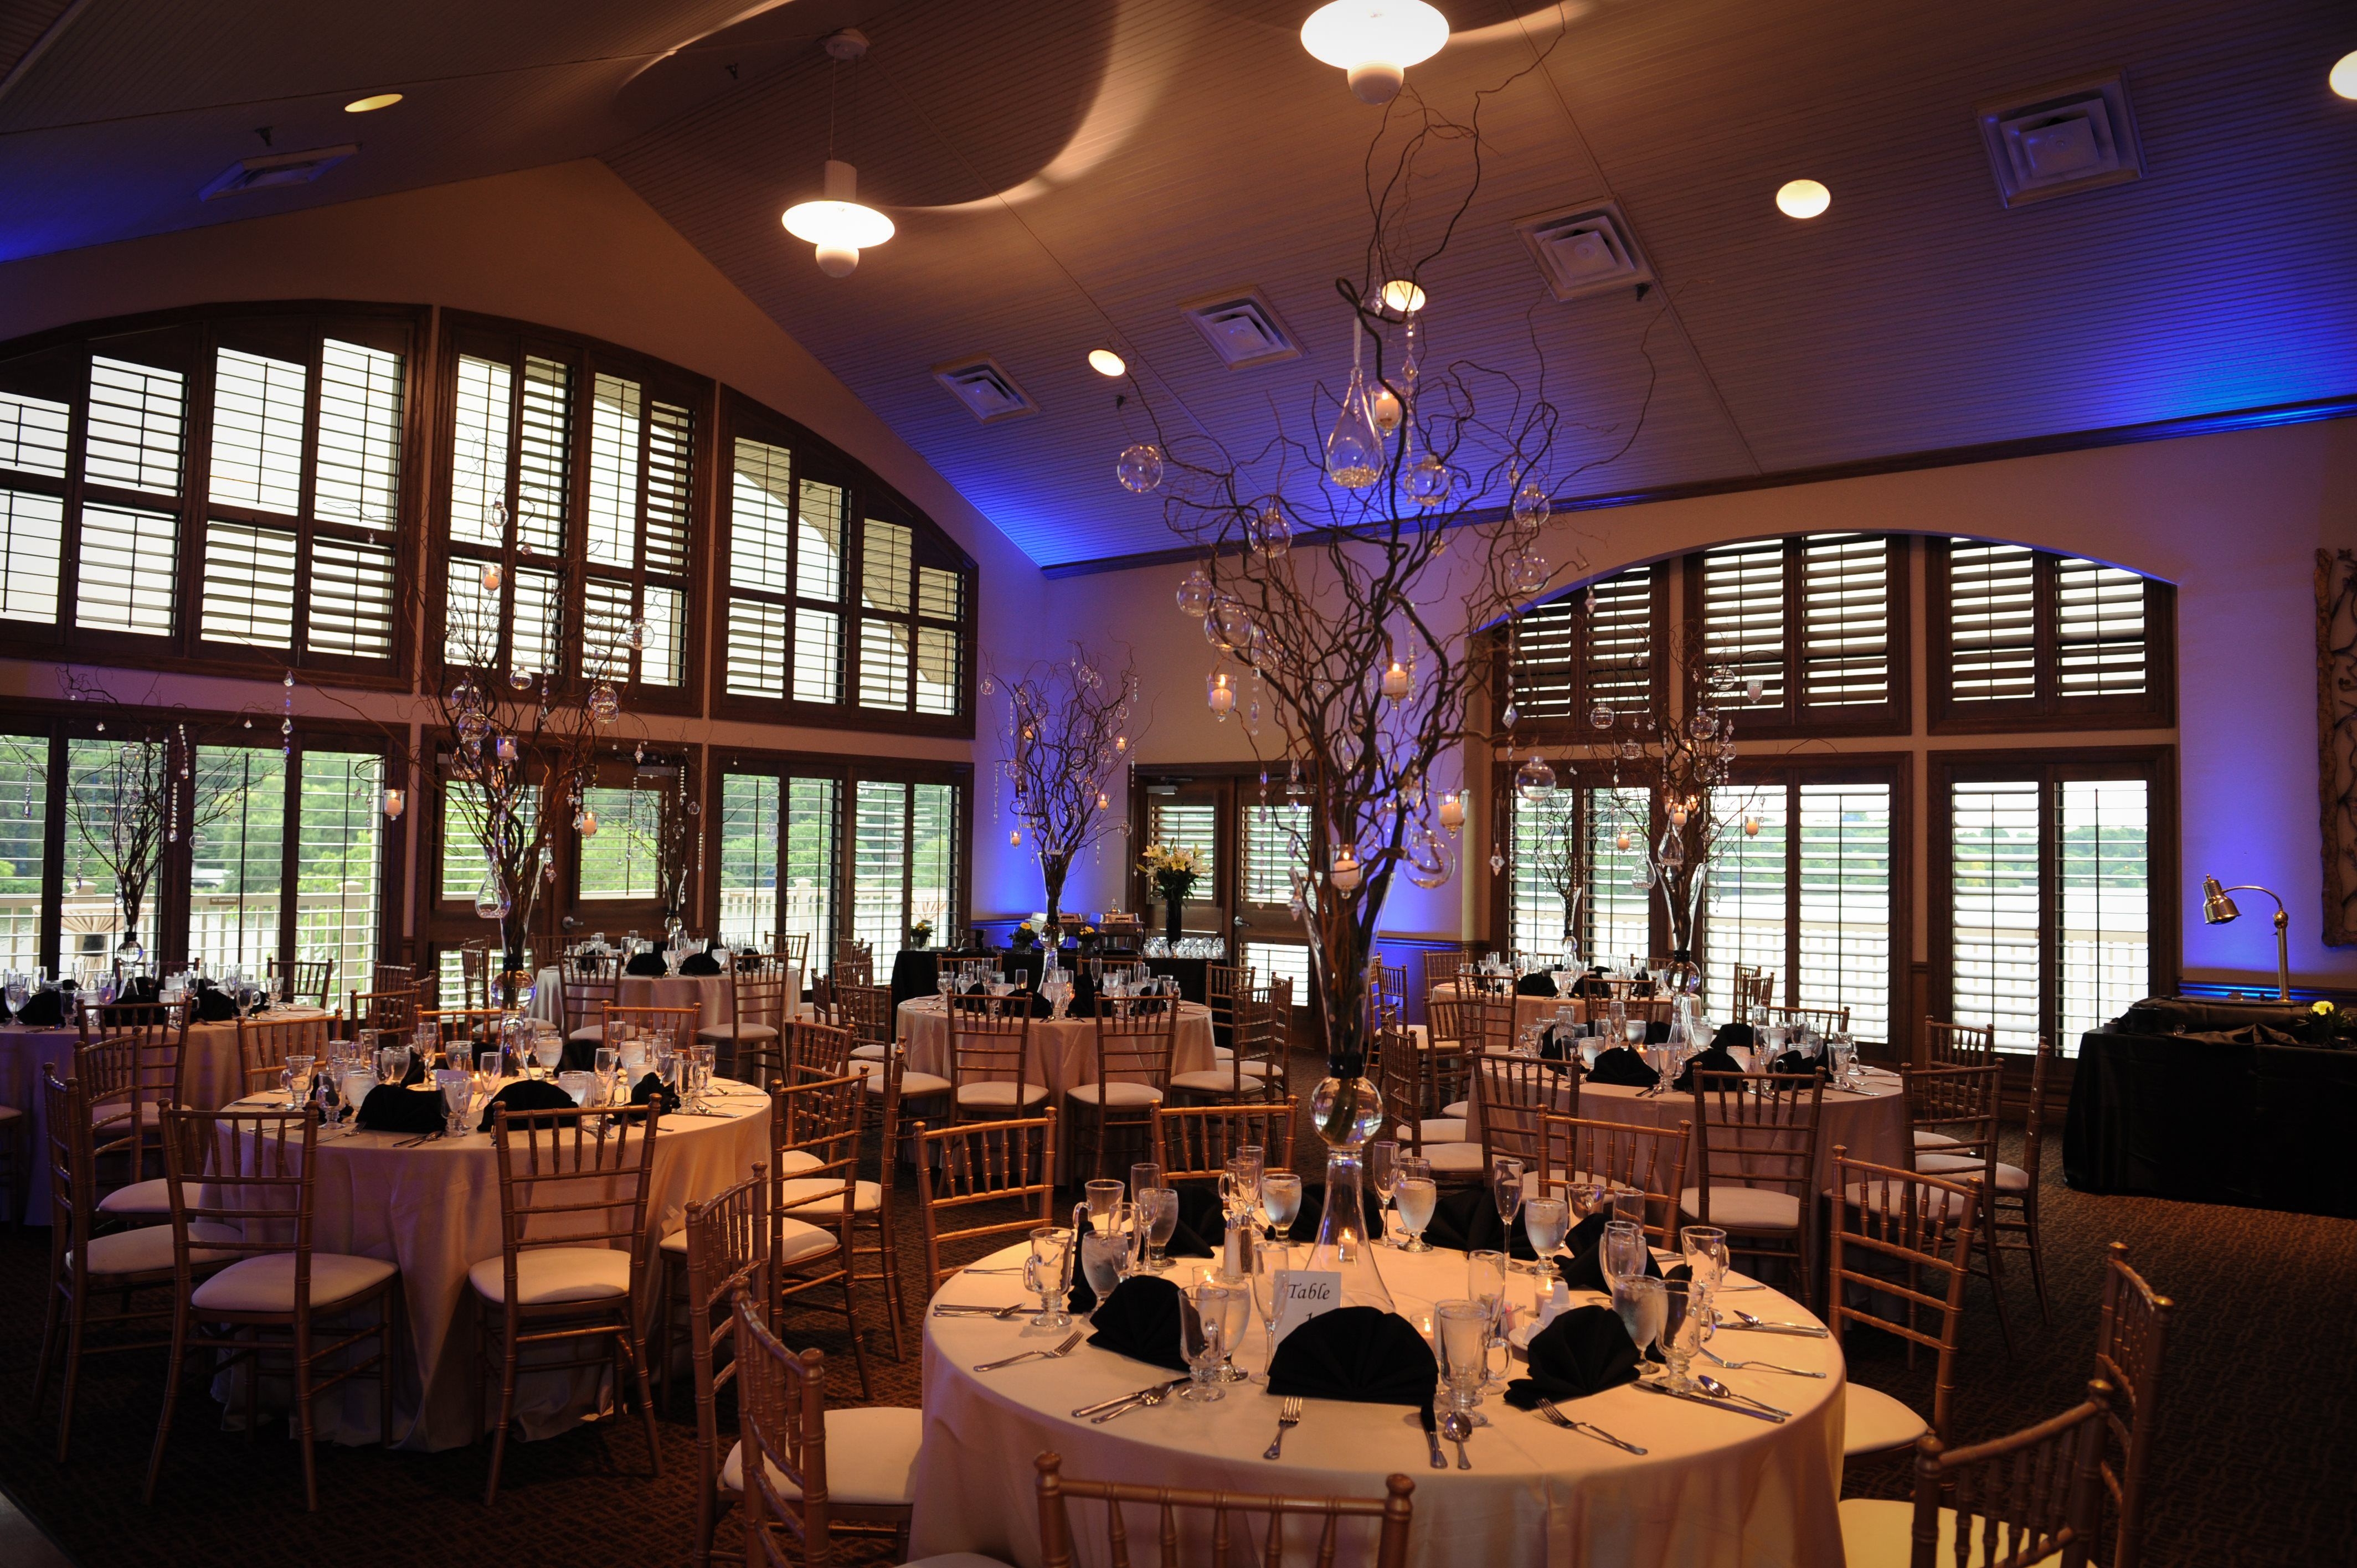 Camden county boathouse in south jersey plain outdoor space the camden county boathouse located in pennsauken nj is one of sensational hosts preferred venues for wedding corporate and social event catering junglespirit Gallery